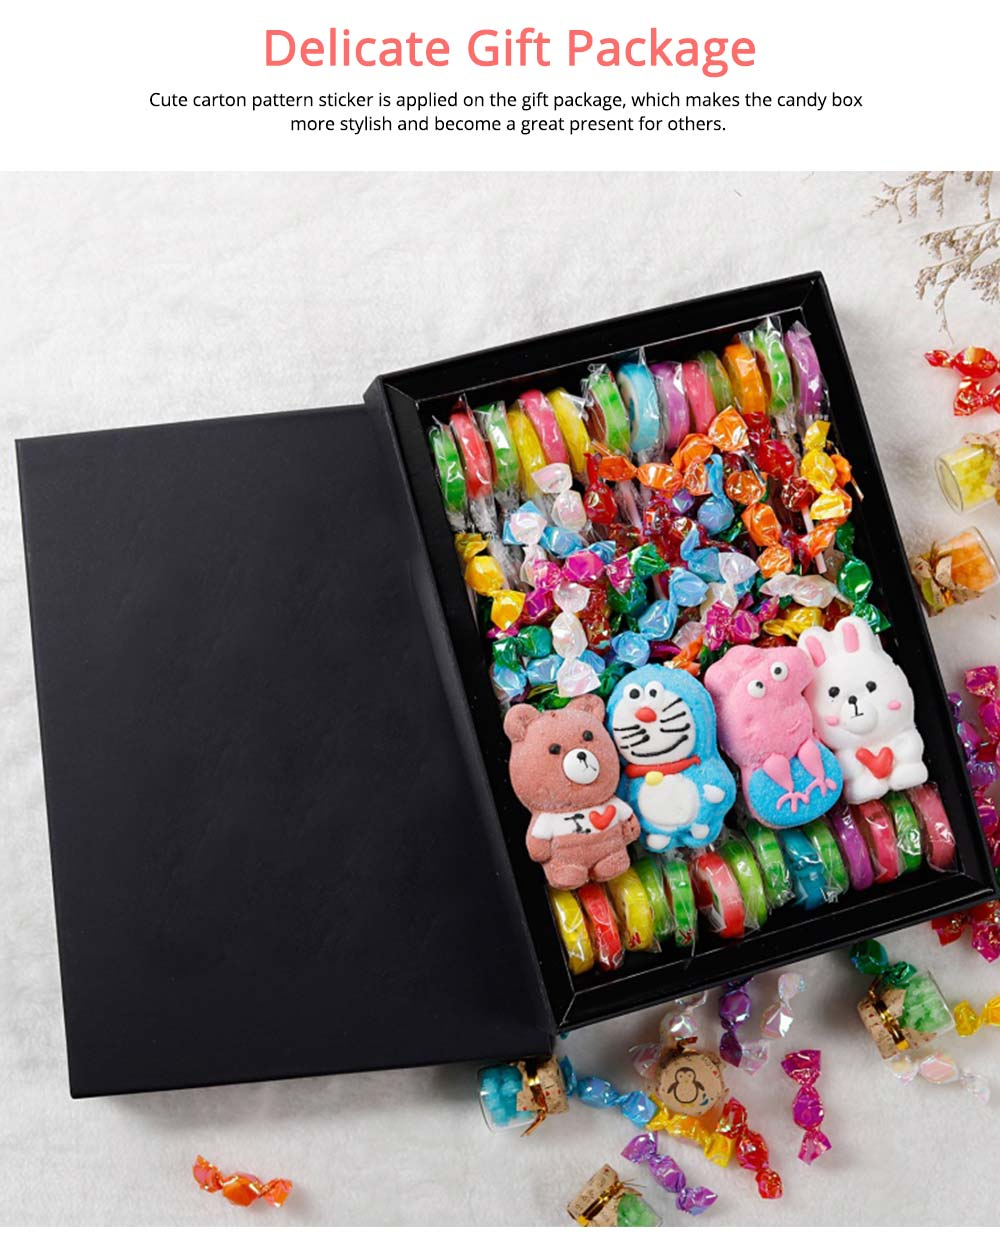 Cute Creative Candy Marshmallow Lollipop Gift Box for Children, Delicate Carton Painting Sticker Candy Present for Lovers Family 4